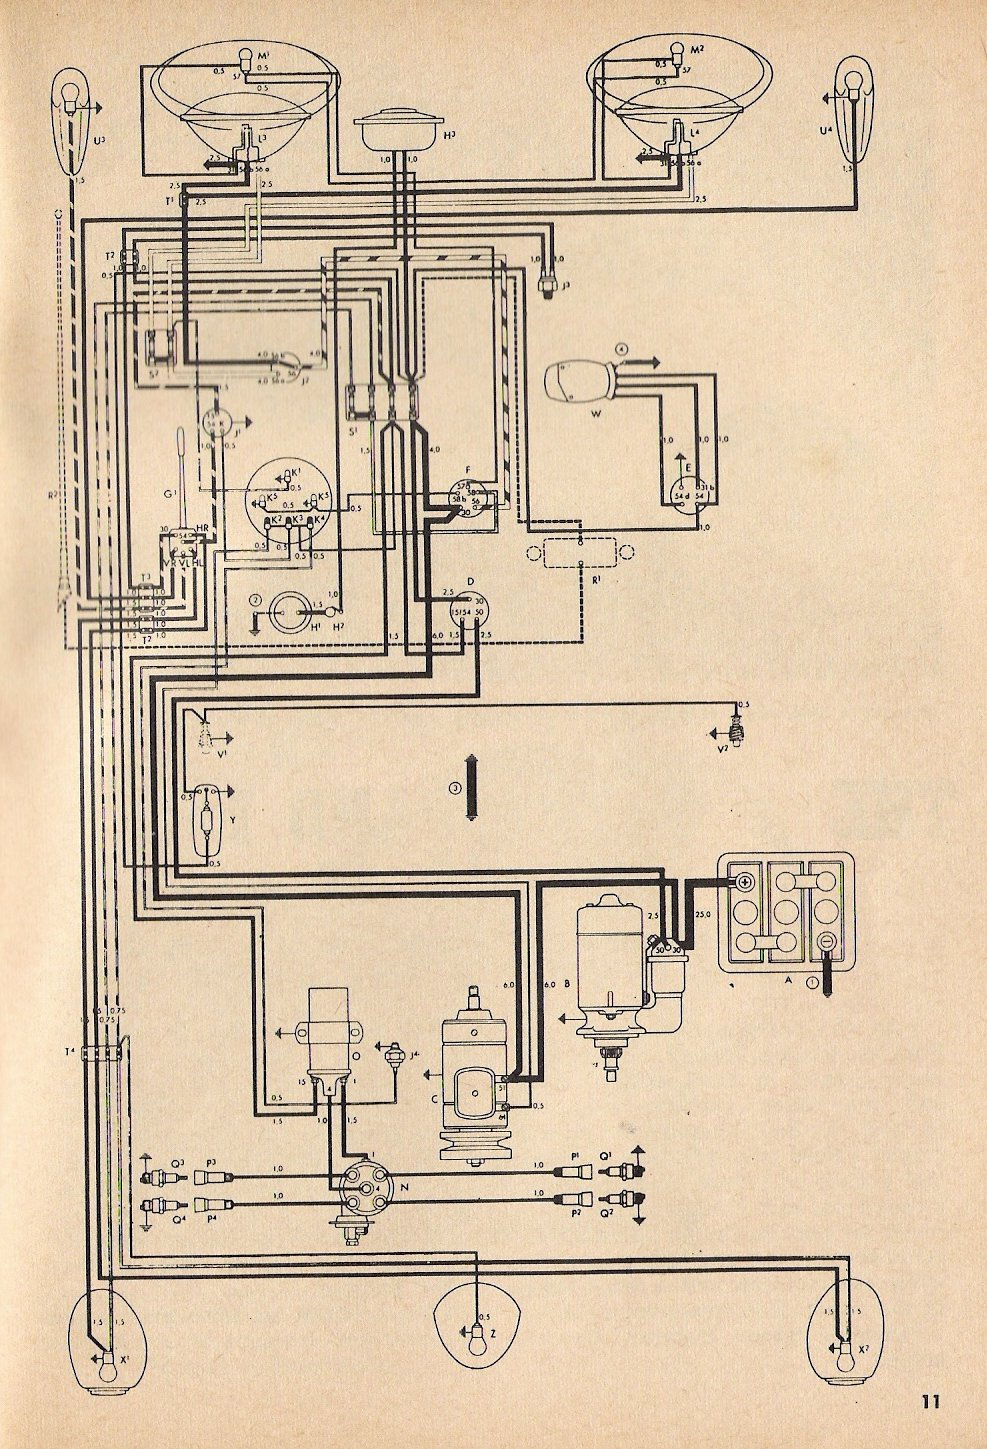 1974 vw beetle turn signal wiring diagram